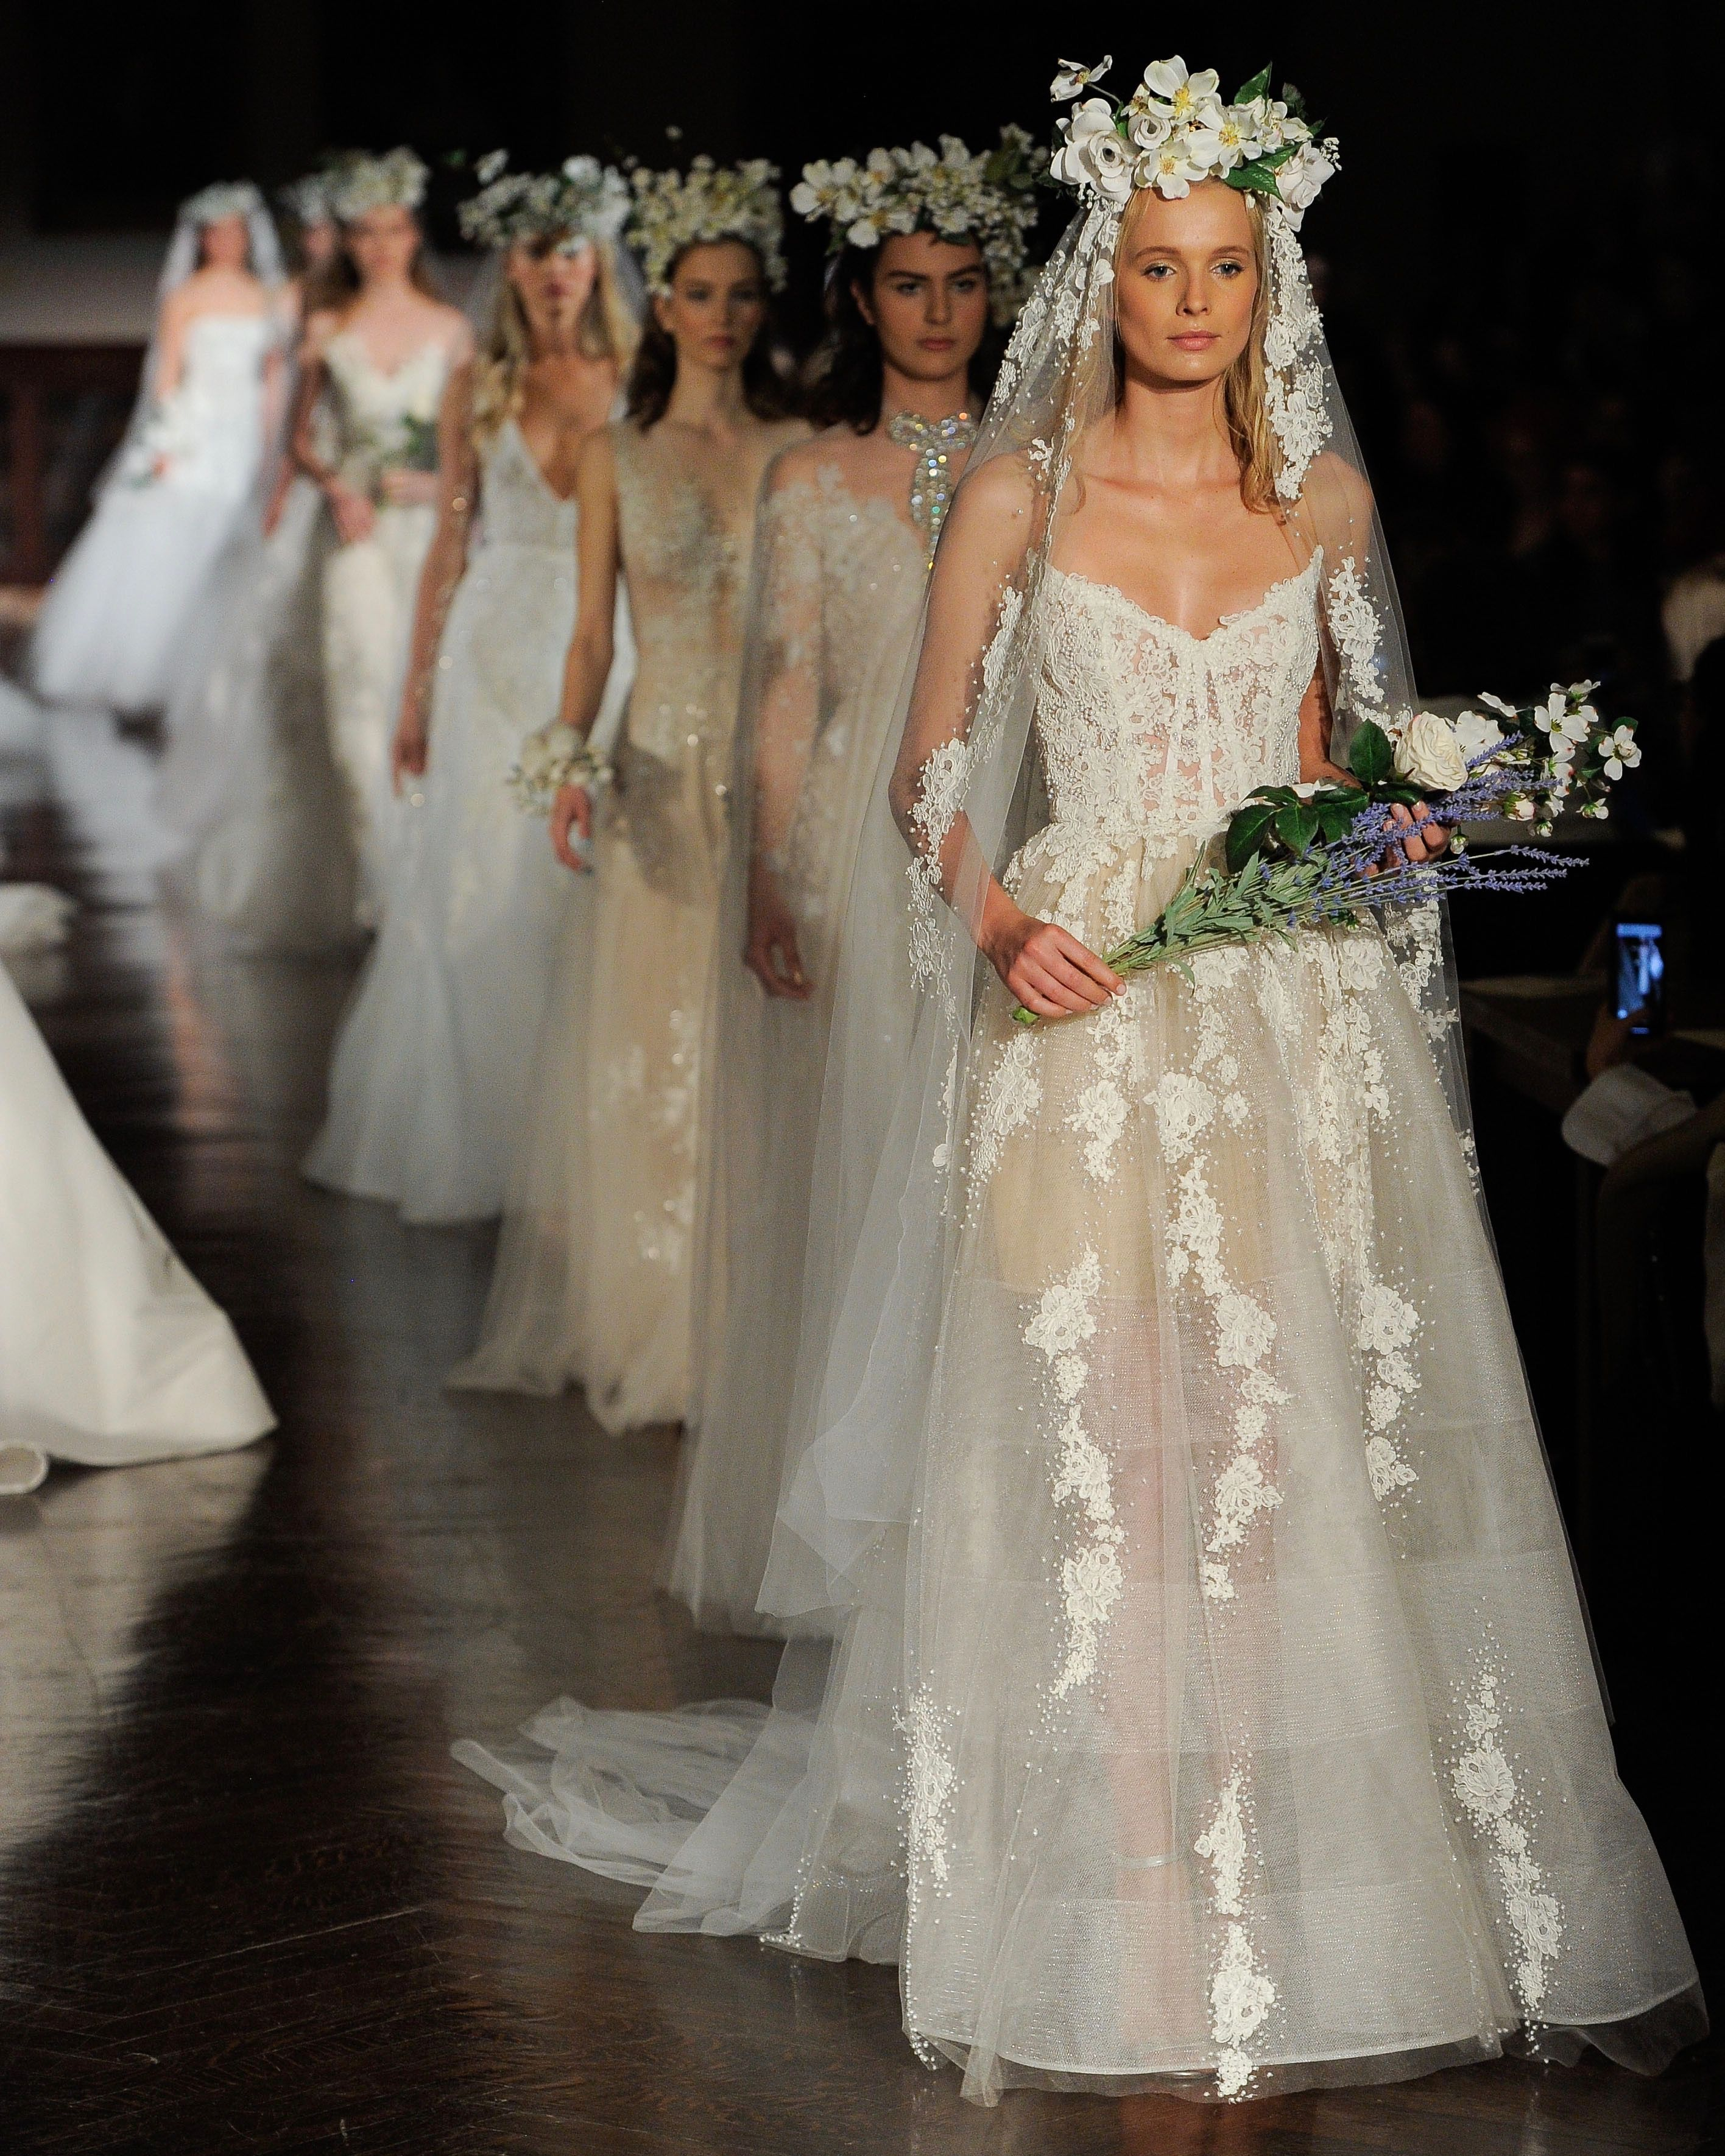 52f6f9f67eec Make an appointment at our NY Boutique! - link in bio . #ReemAcraWedding  #ReemAcra #bride #bridal #wedding #weddingdress